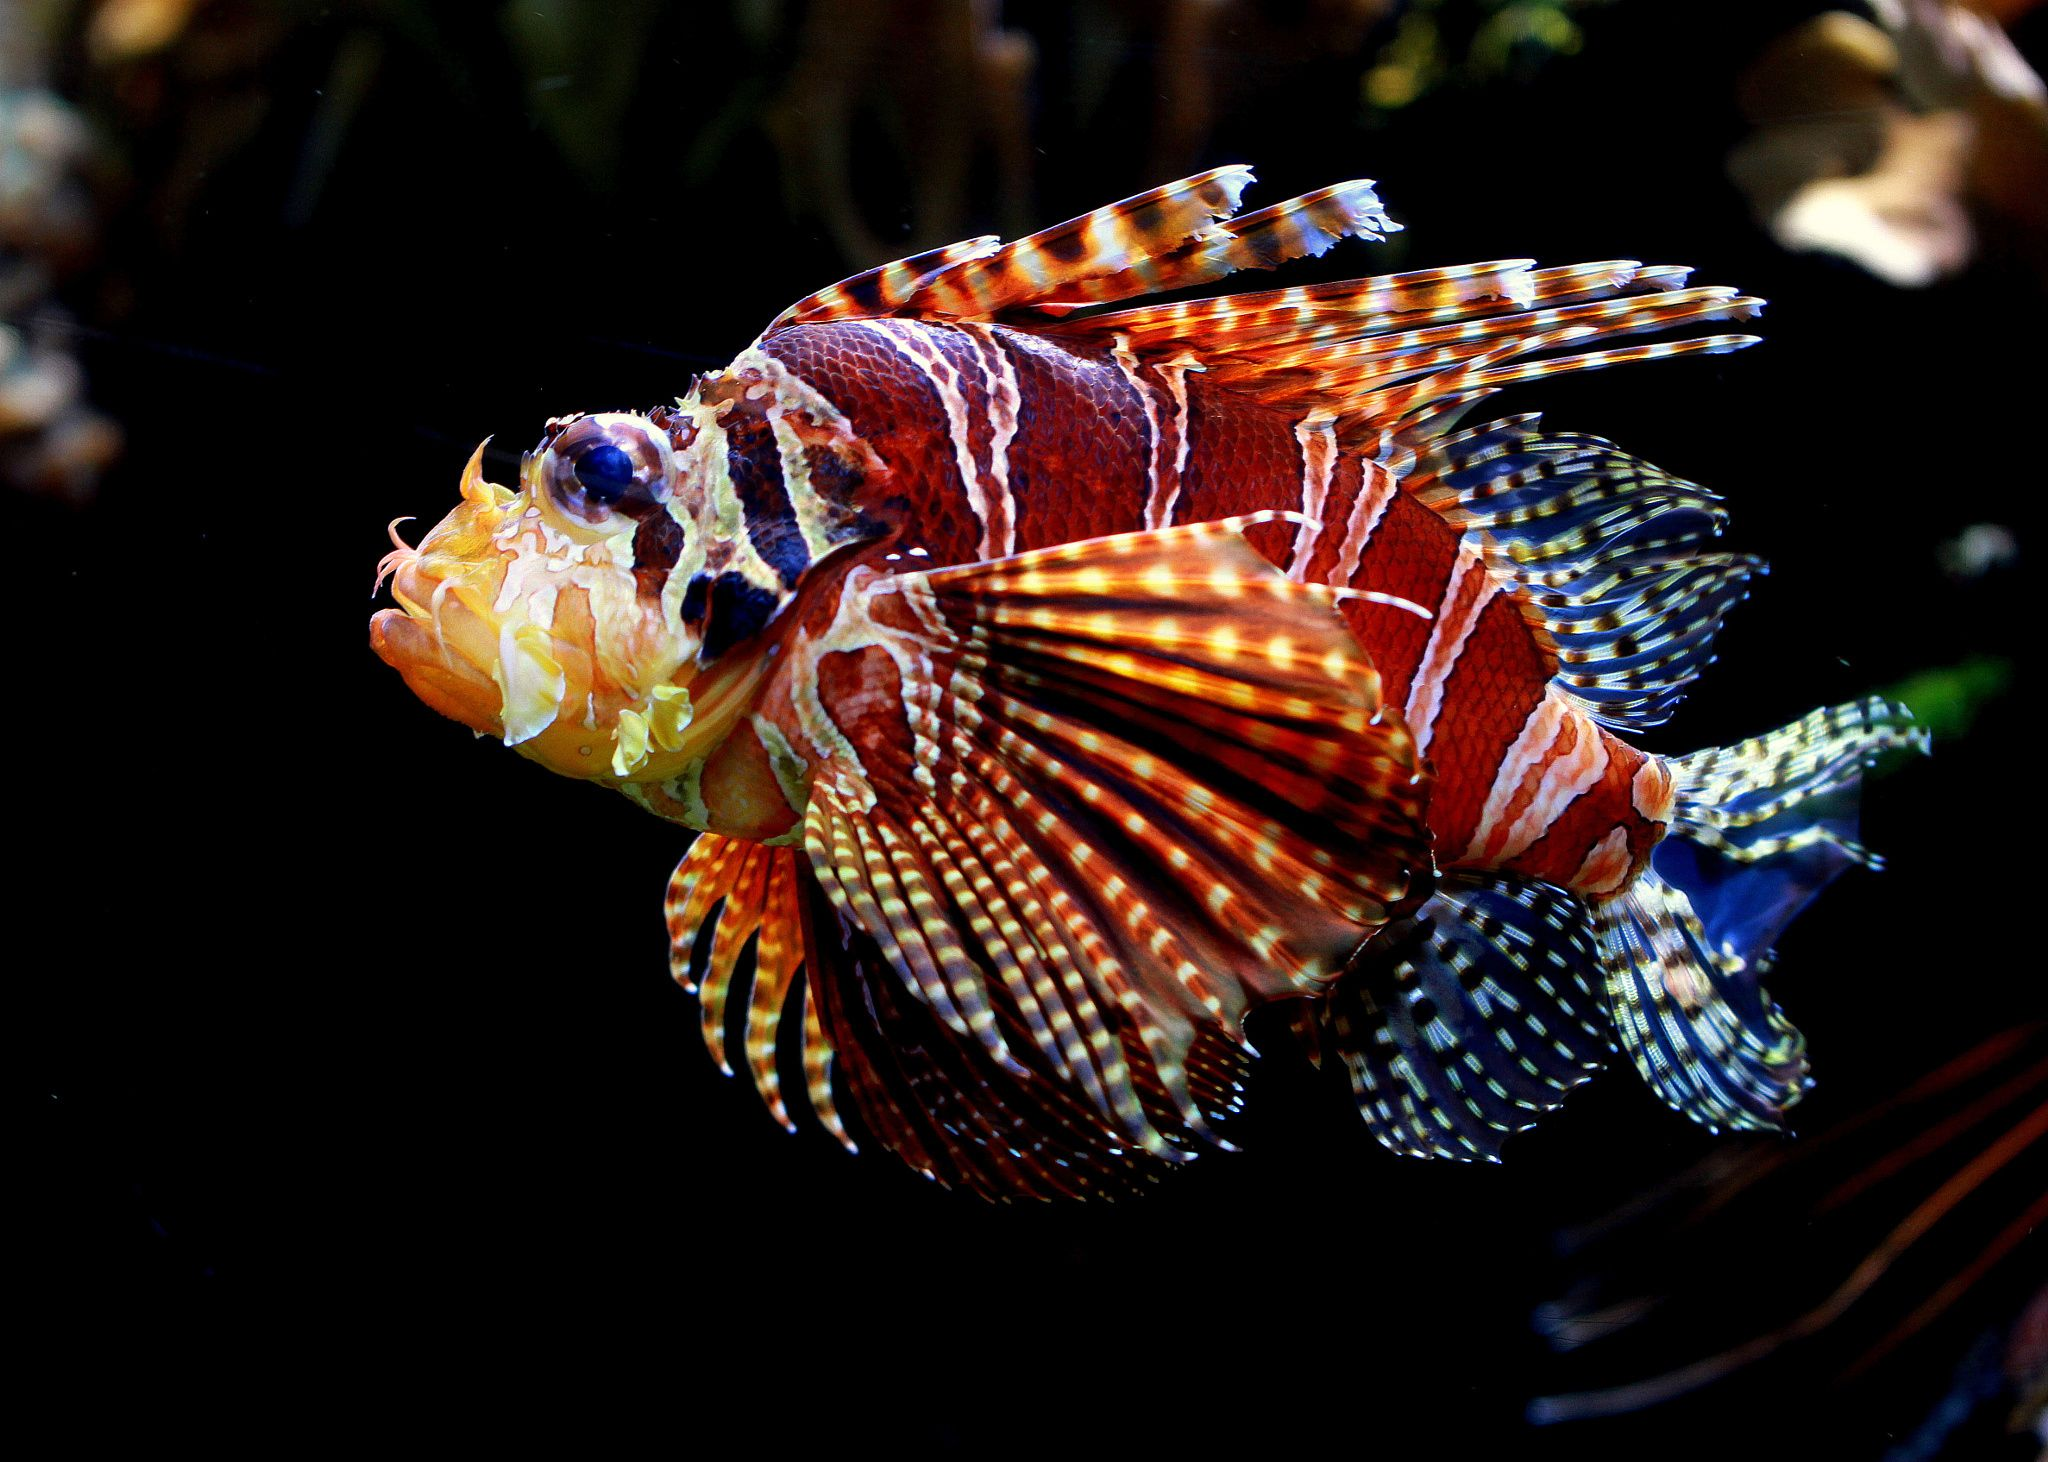 The Red Lionfish Pterois Volitans Is A Venomous Coral Reef Fish In The Family Scorpaenidae Order Scorpaeniformes Sea Animals Lion Fish Life Under The Sea